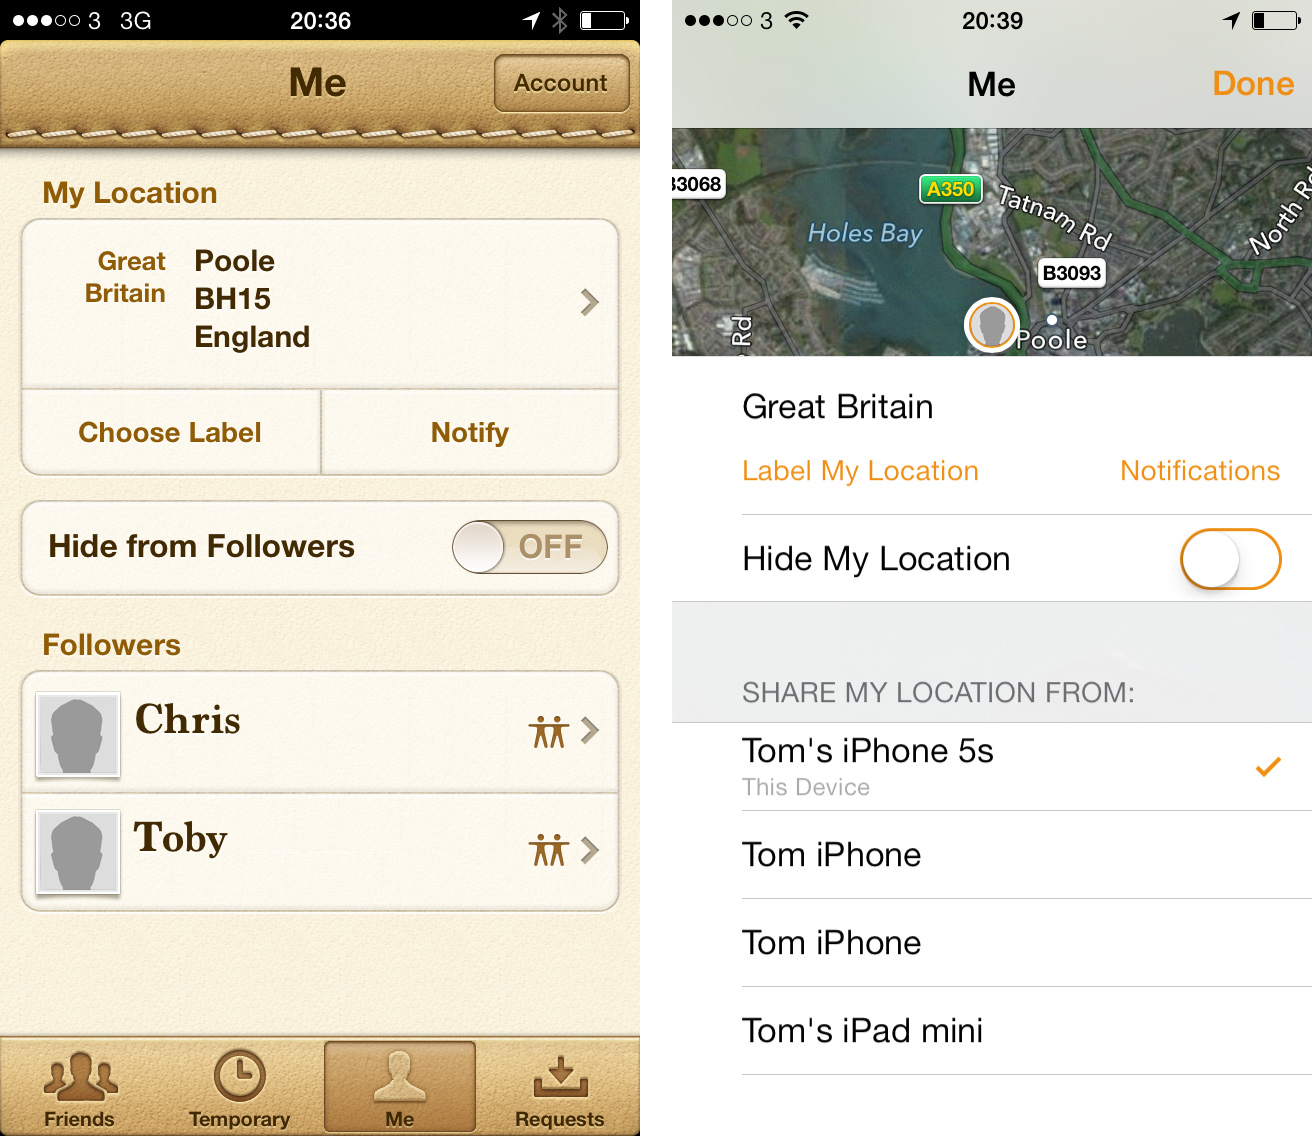 Find My Friends iOS 7 Me Comparison